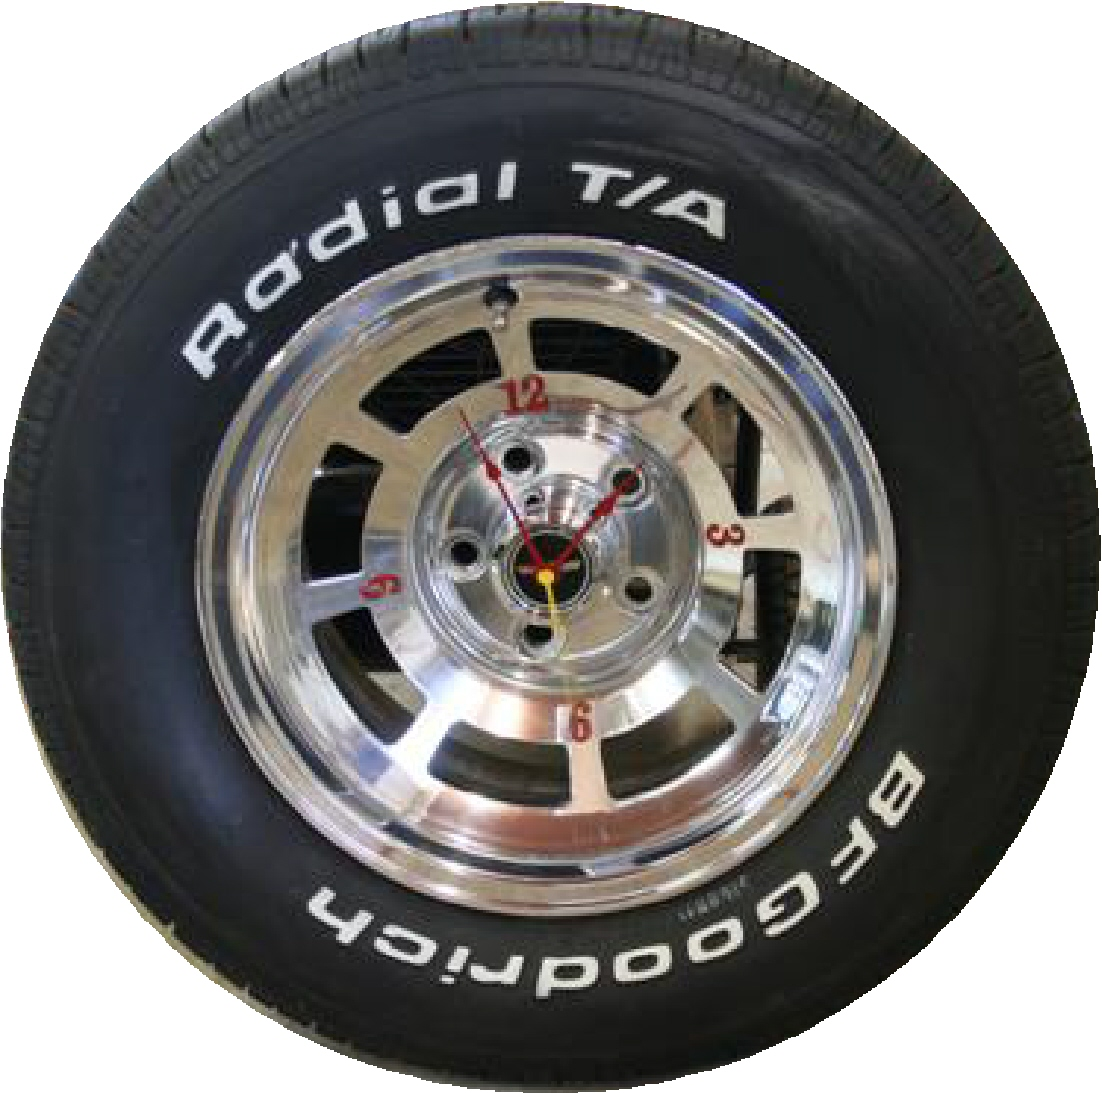 Wheel/Tire Clock Do-it-Yourself - Information on ...